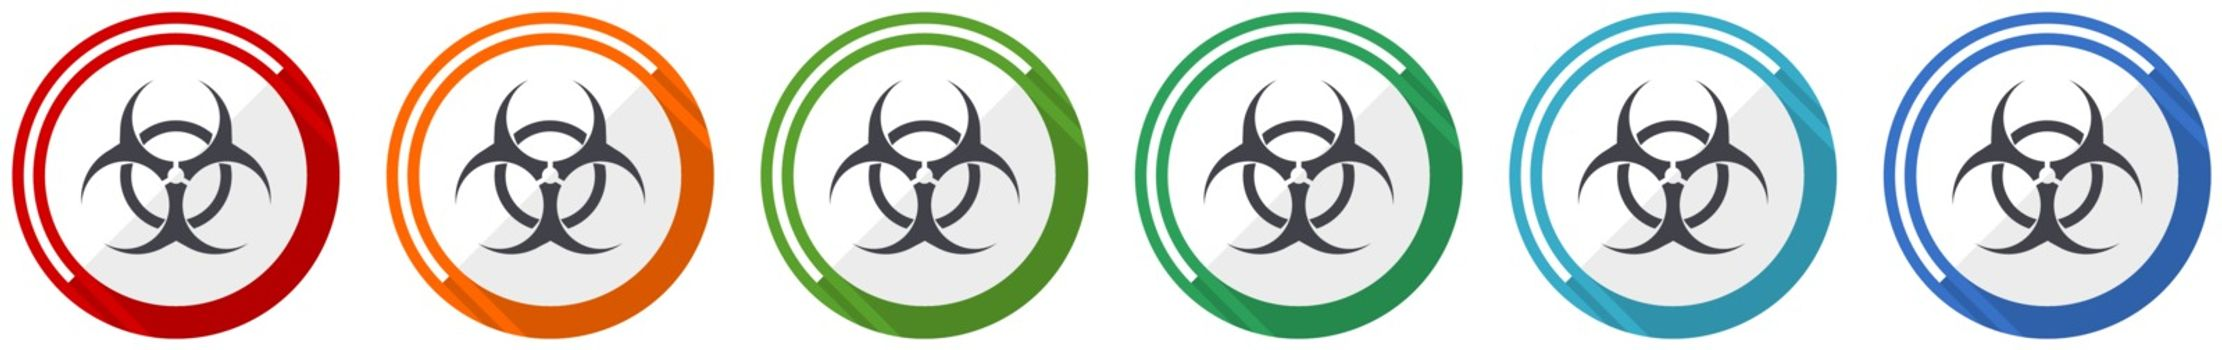 Biohazard icon set, flat design vector illustration in 6 colors options for webdesign and mobile applications